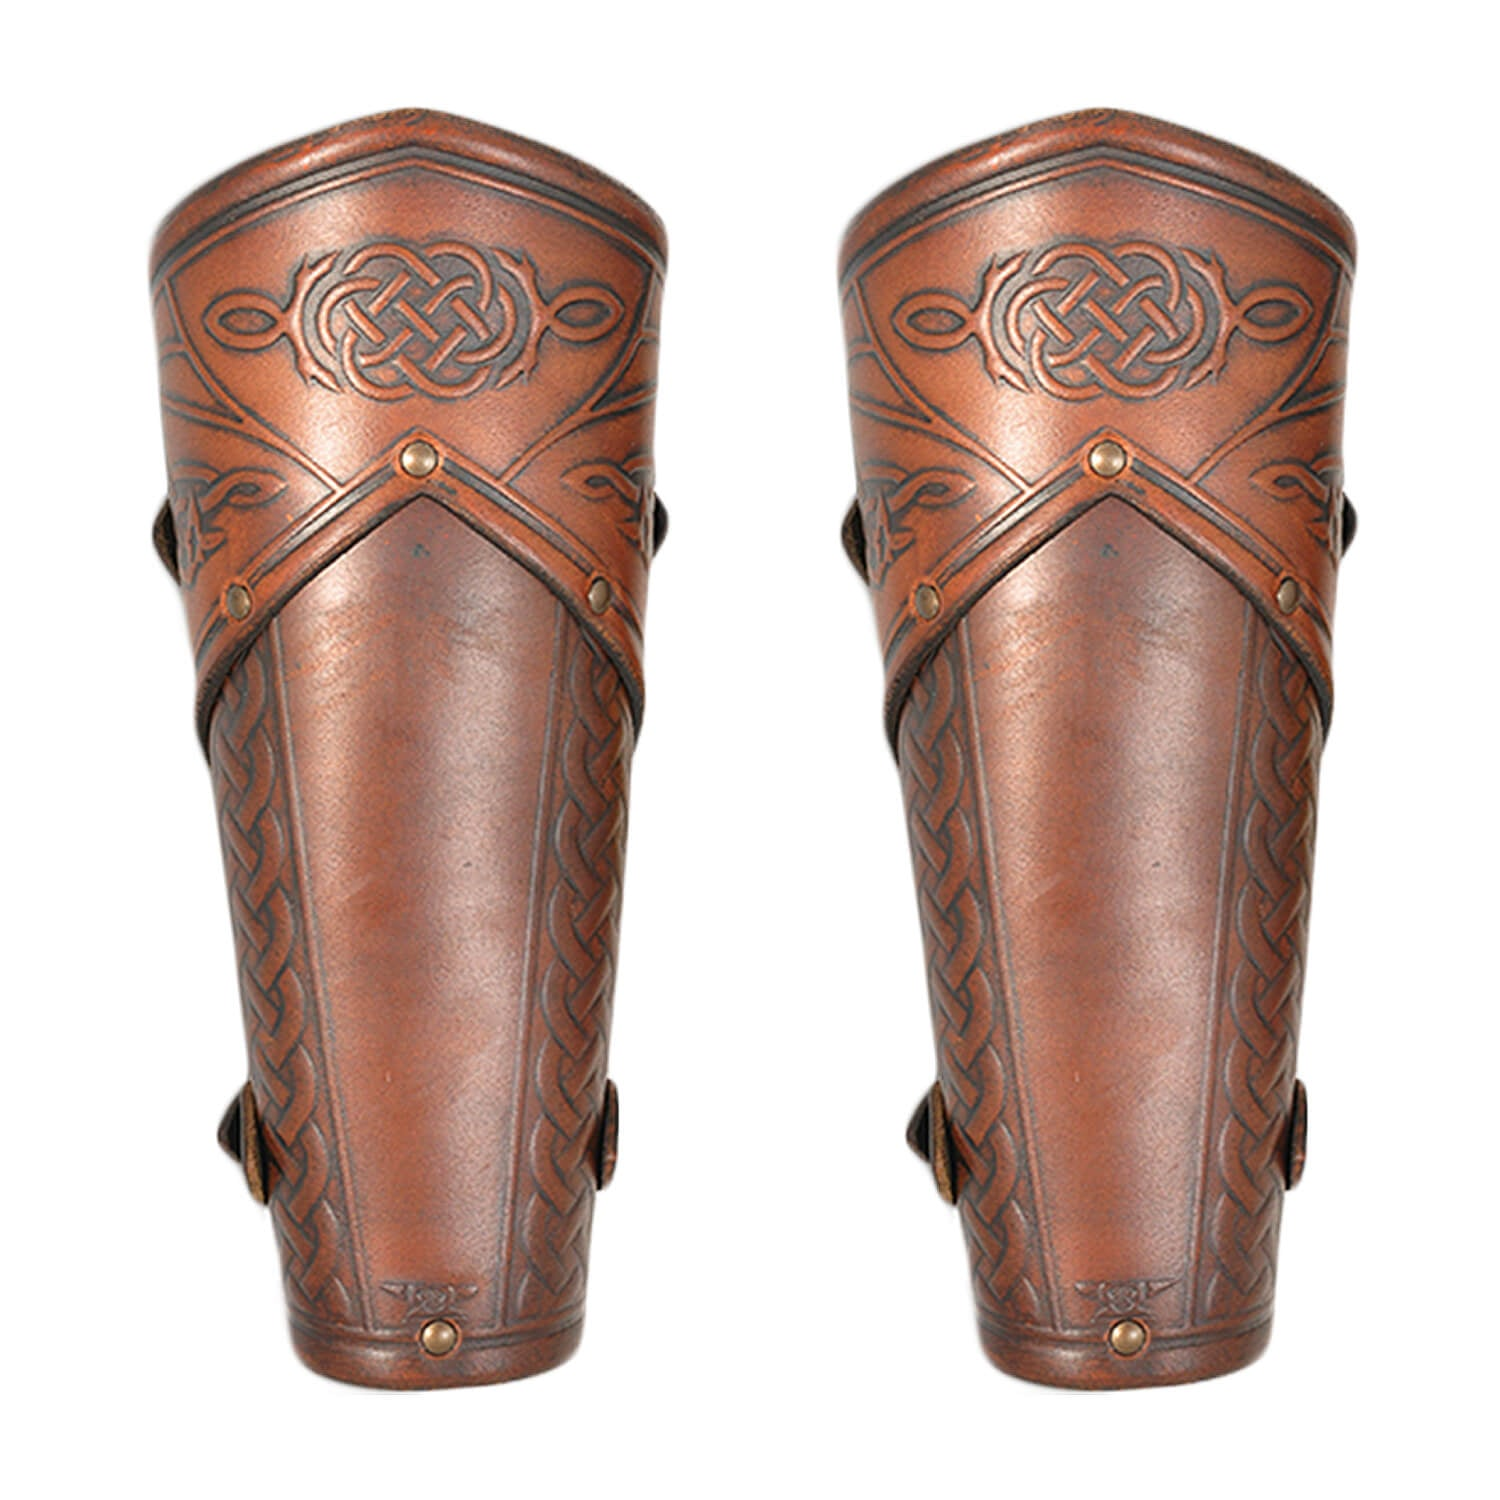 Mantikor bracers 2nd ed.